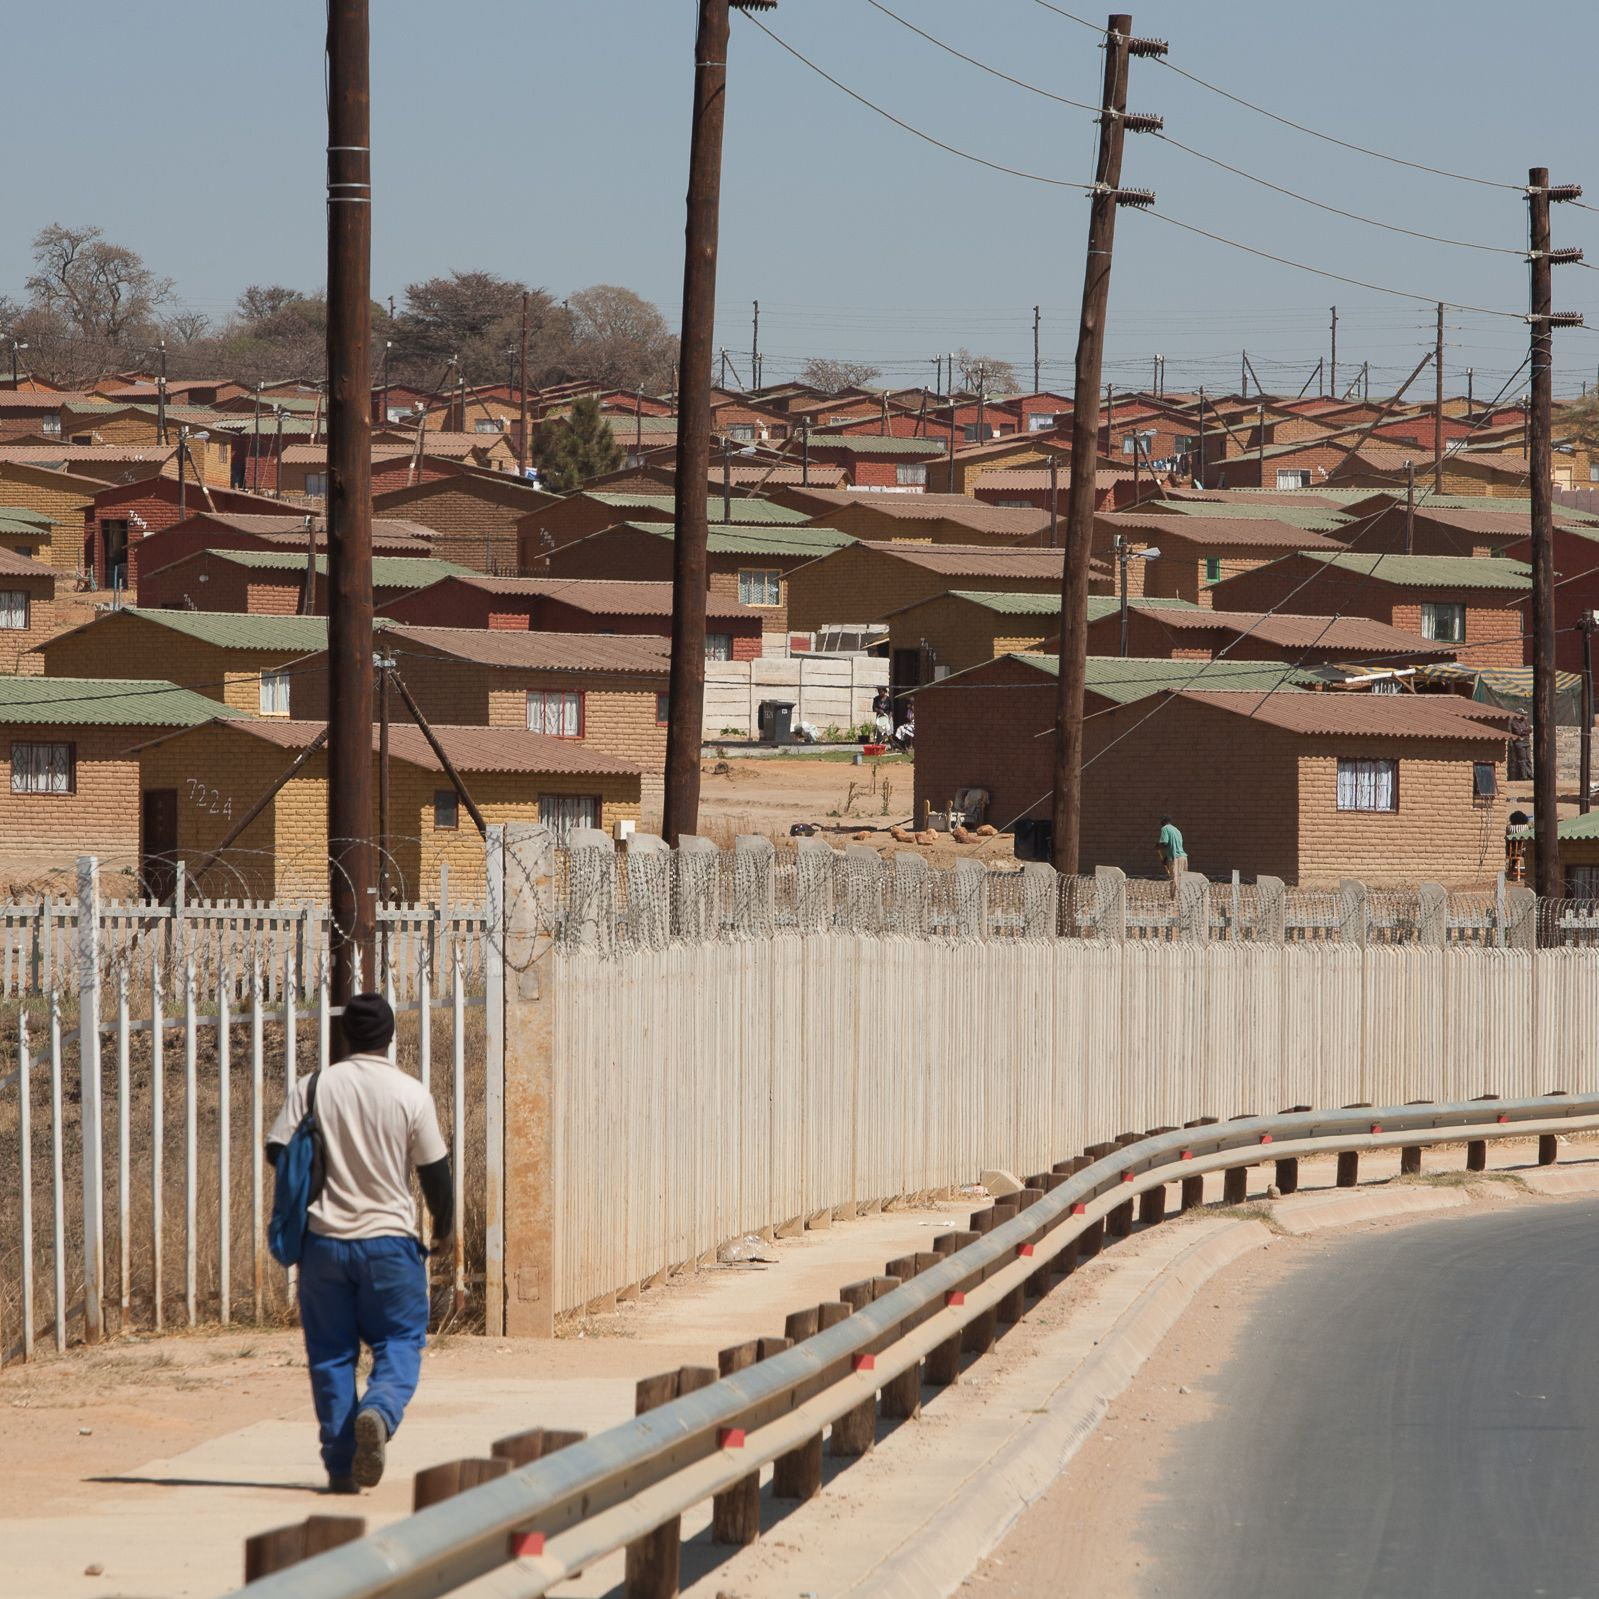 AFRONOMICS: Analyzing Inequality in Africa